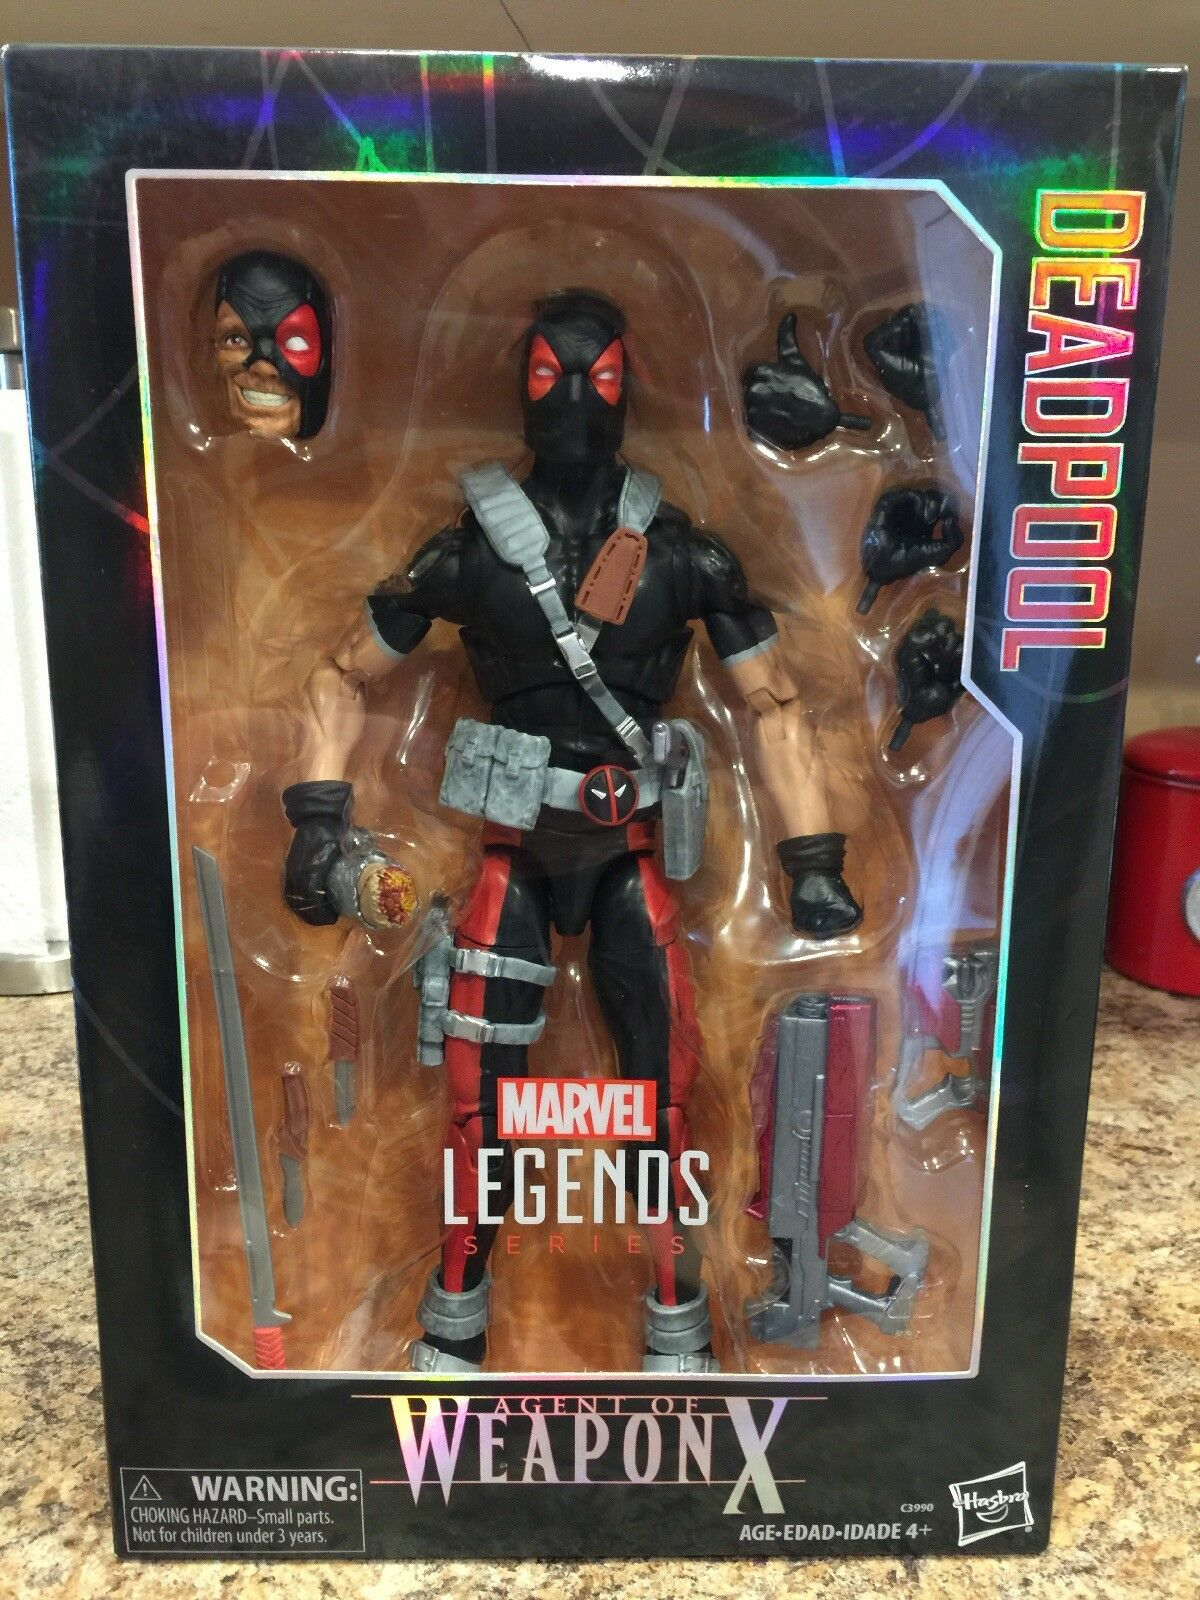 MARVEL LEGENDS AGENT OF WEAPON X DEADPOOL 12  FIGURE NEW FREE SHIP EXCLUSIVE